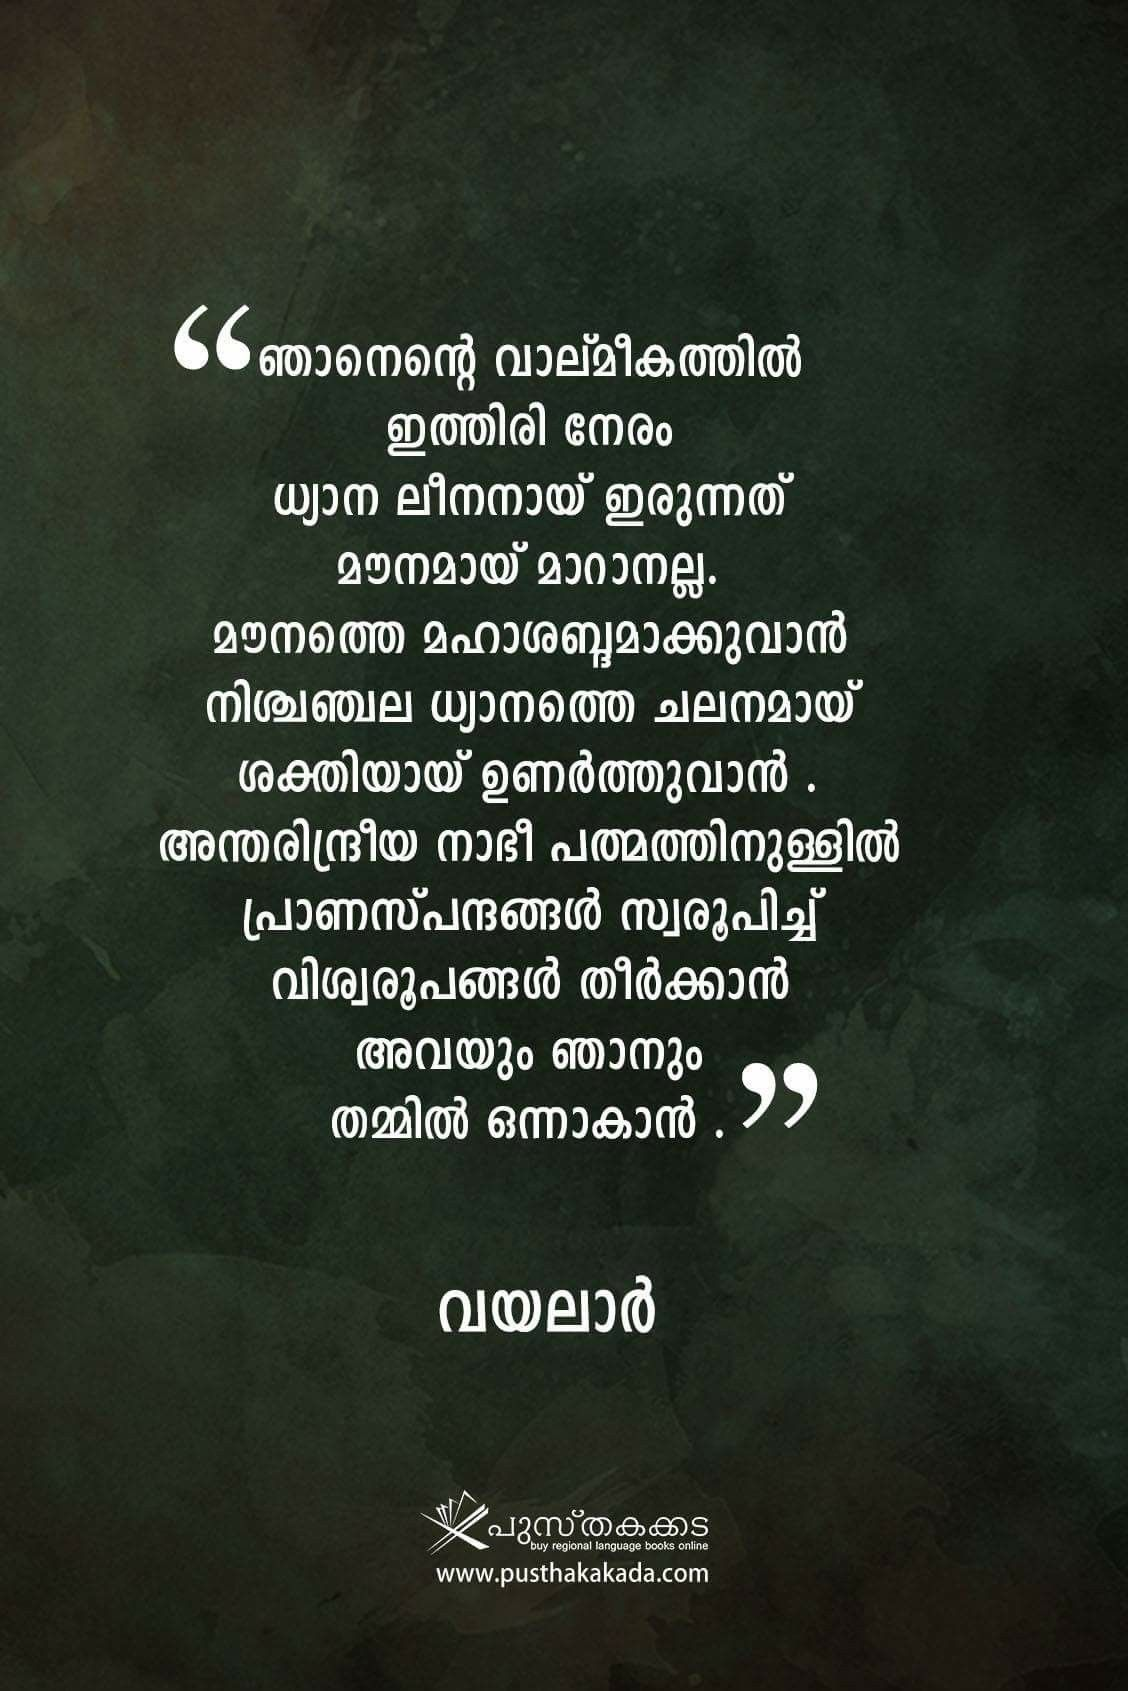 Malayalam Literature Quotes Literature Quotes Quotes About Strength And Love Malayalam Quotes